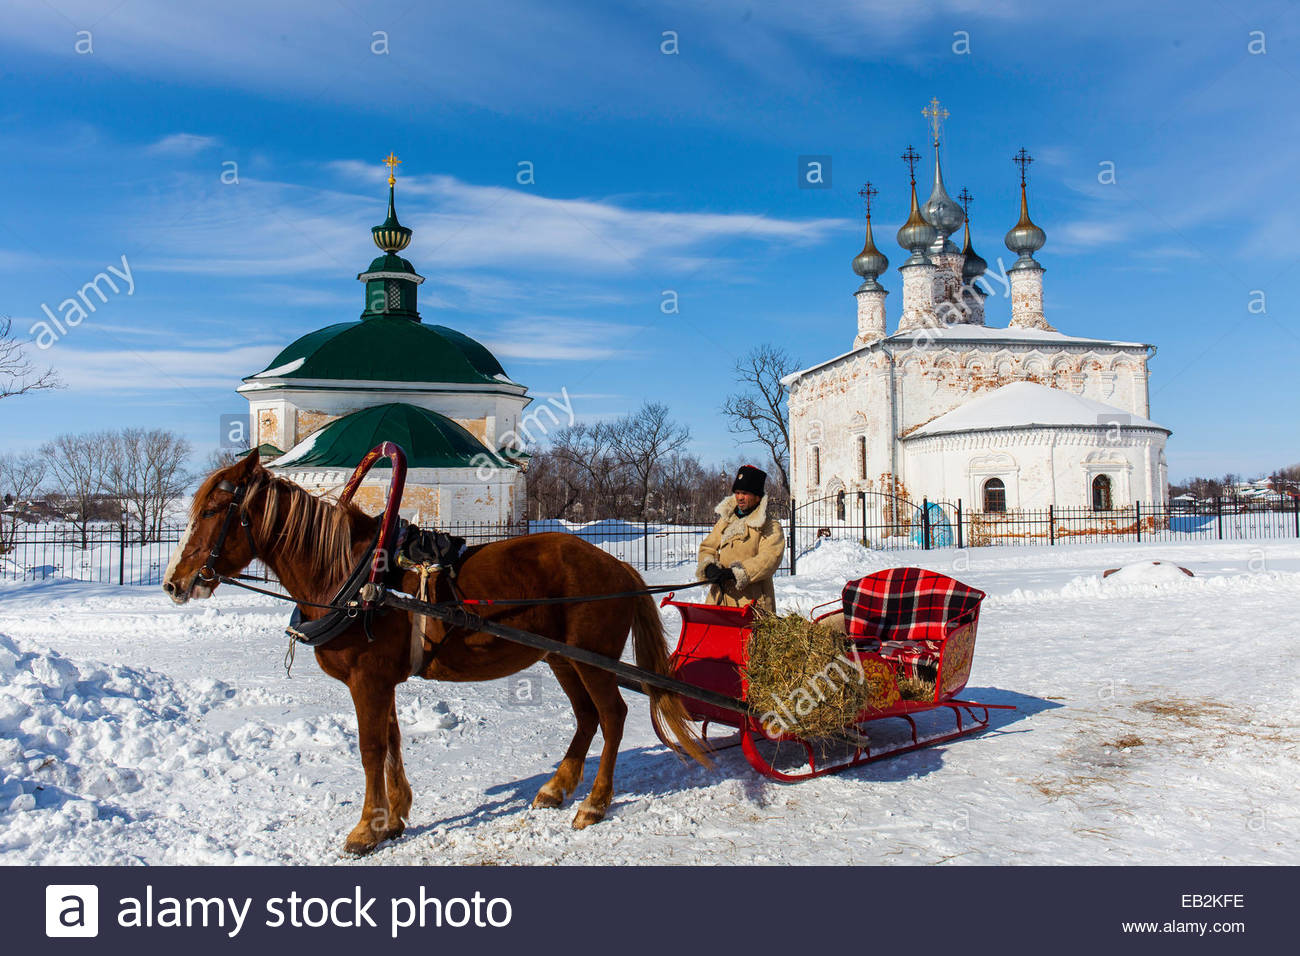 A person with a horse-drawn sleigh at one of the many traditional Russian Orthodox churches in the village of Suzdal, Stock Photo